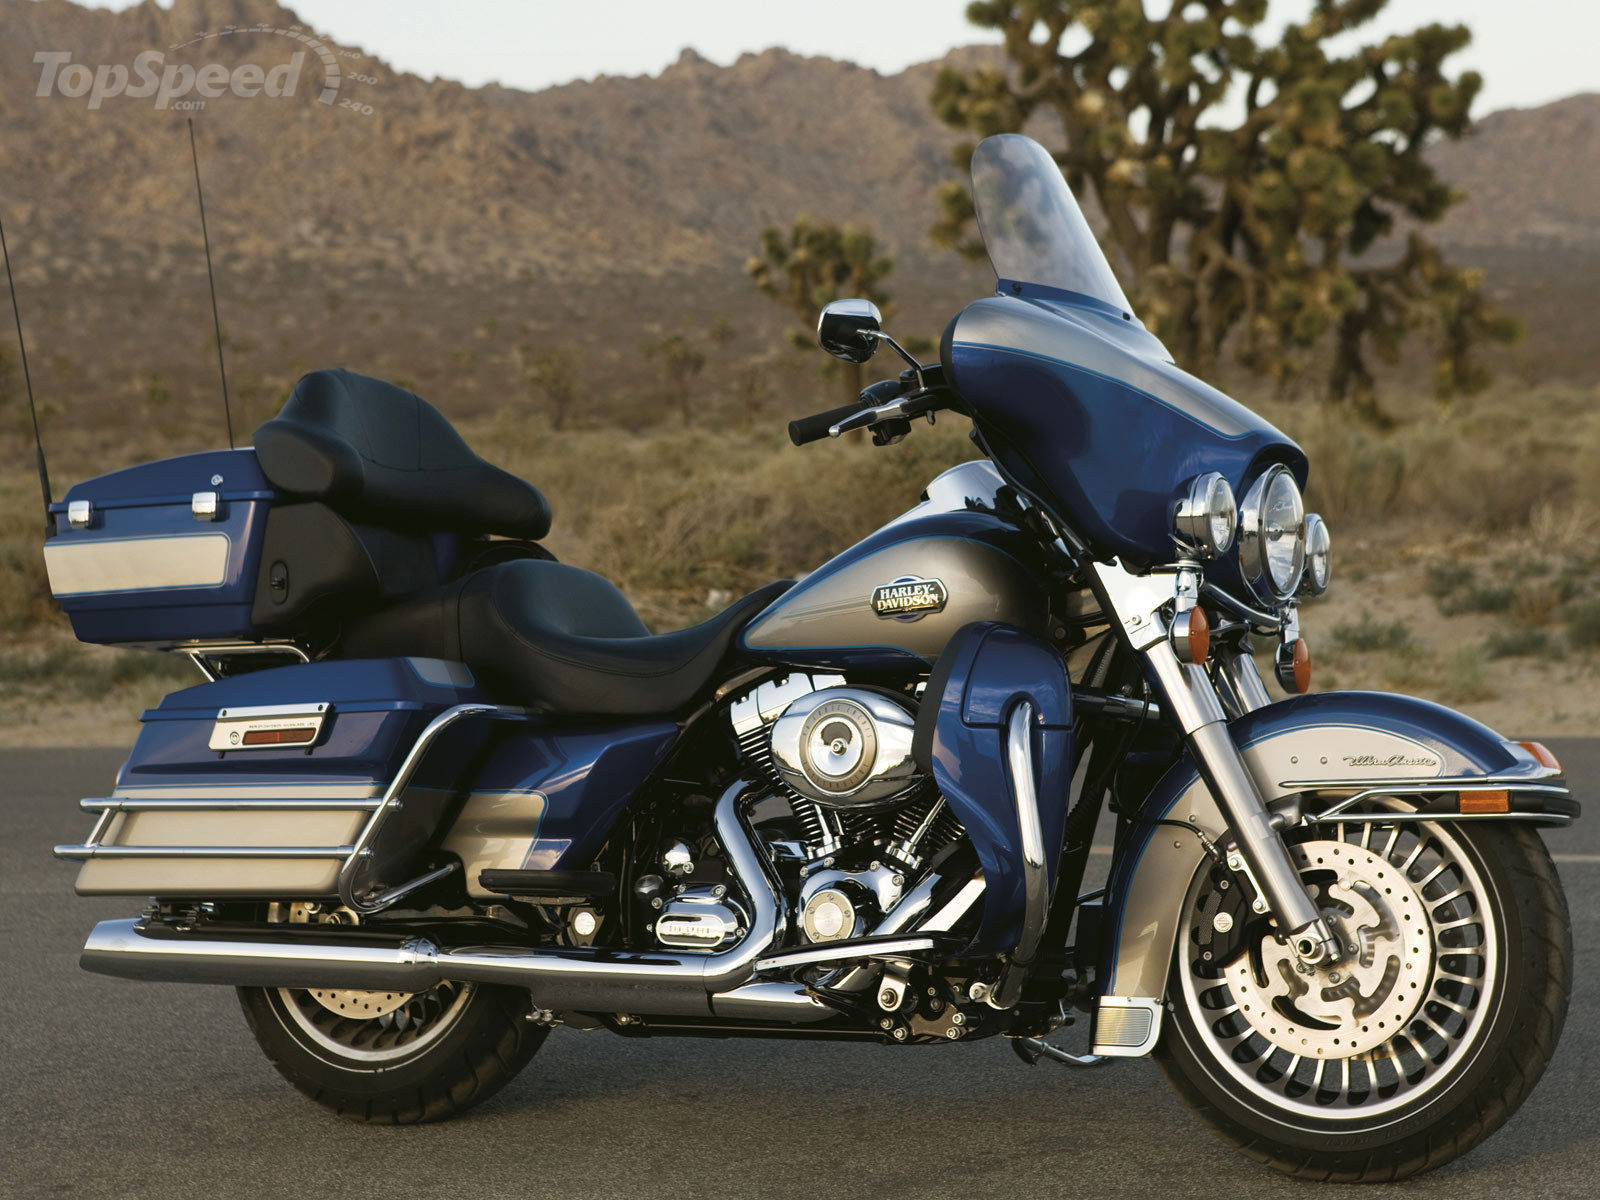 Harley-Davidson FLHTC Electra Glide Classic 2013 pics #19890